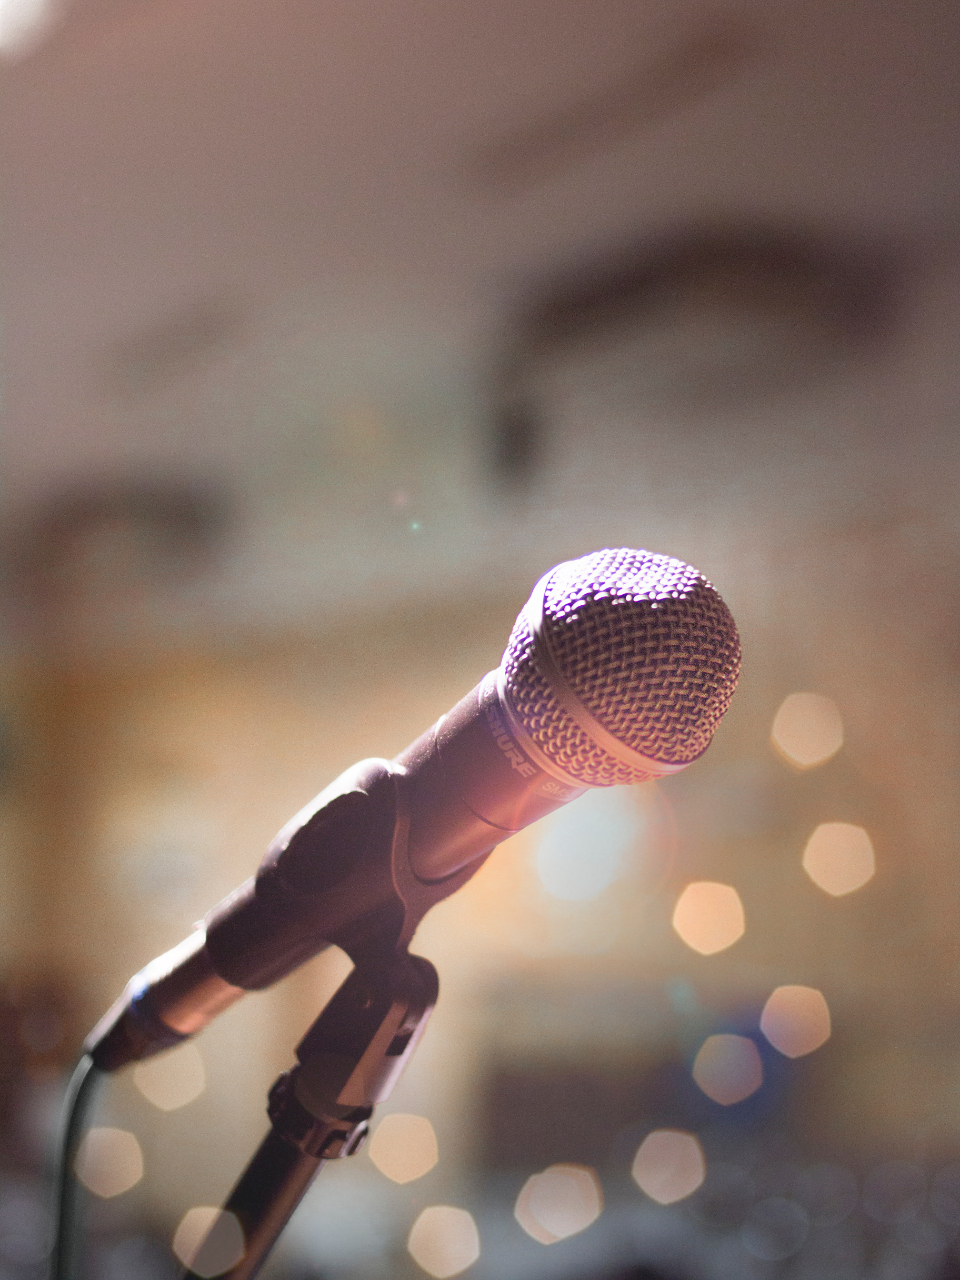 Free stock photo of microphone music